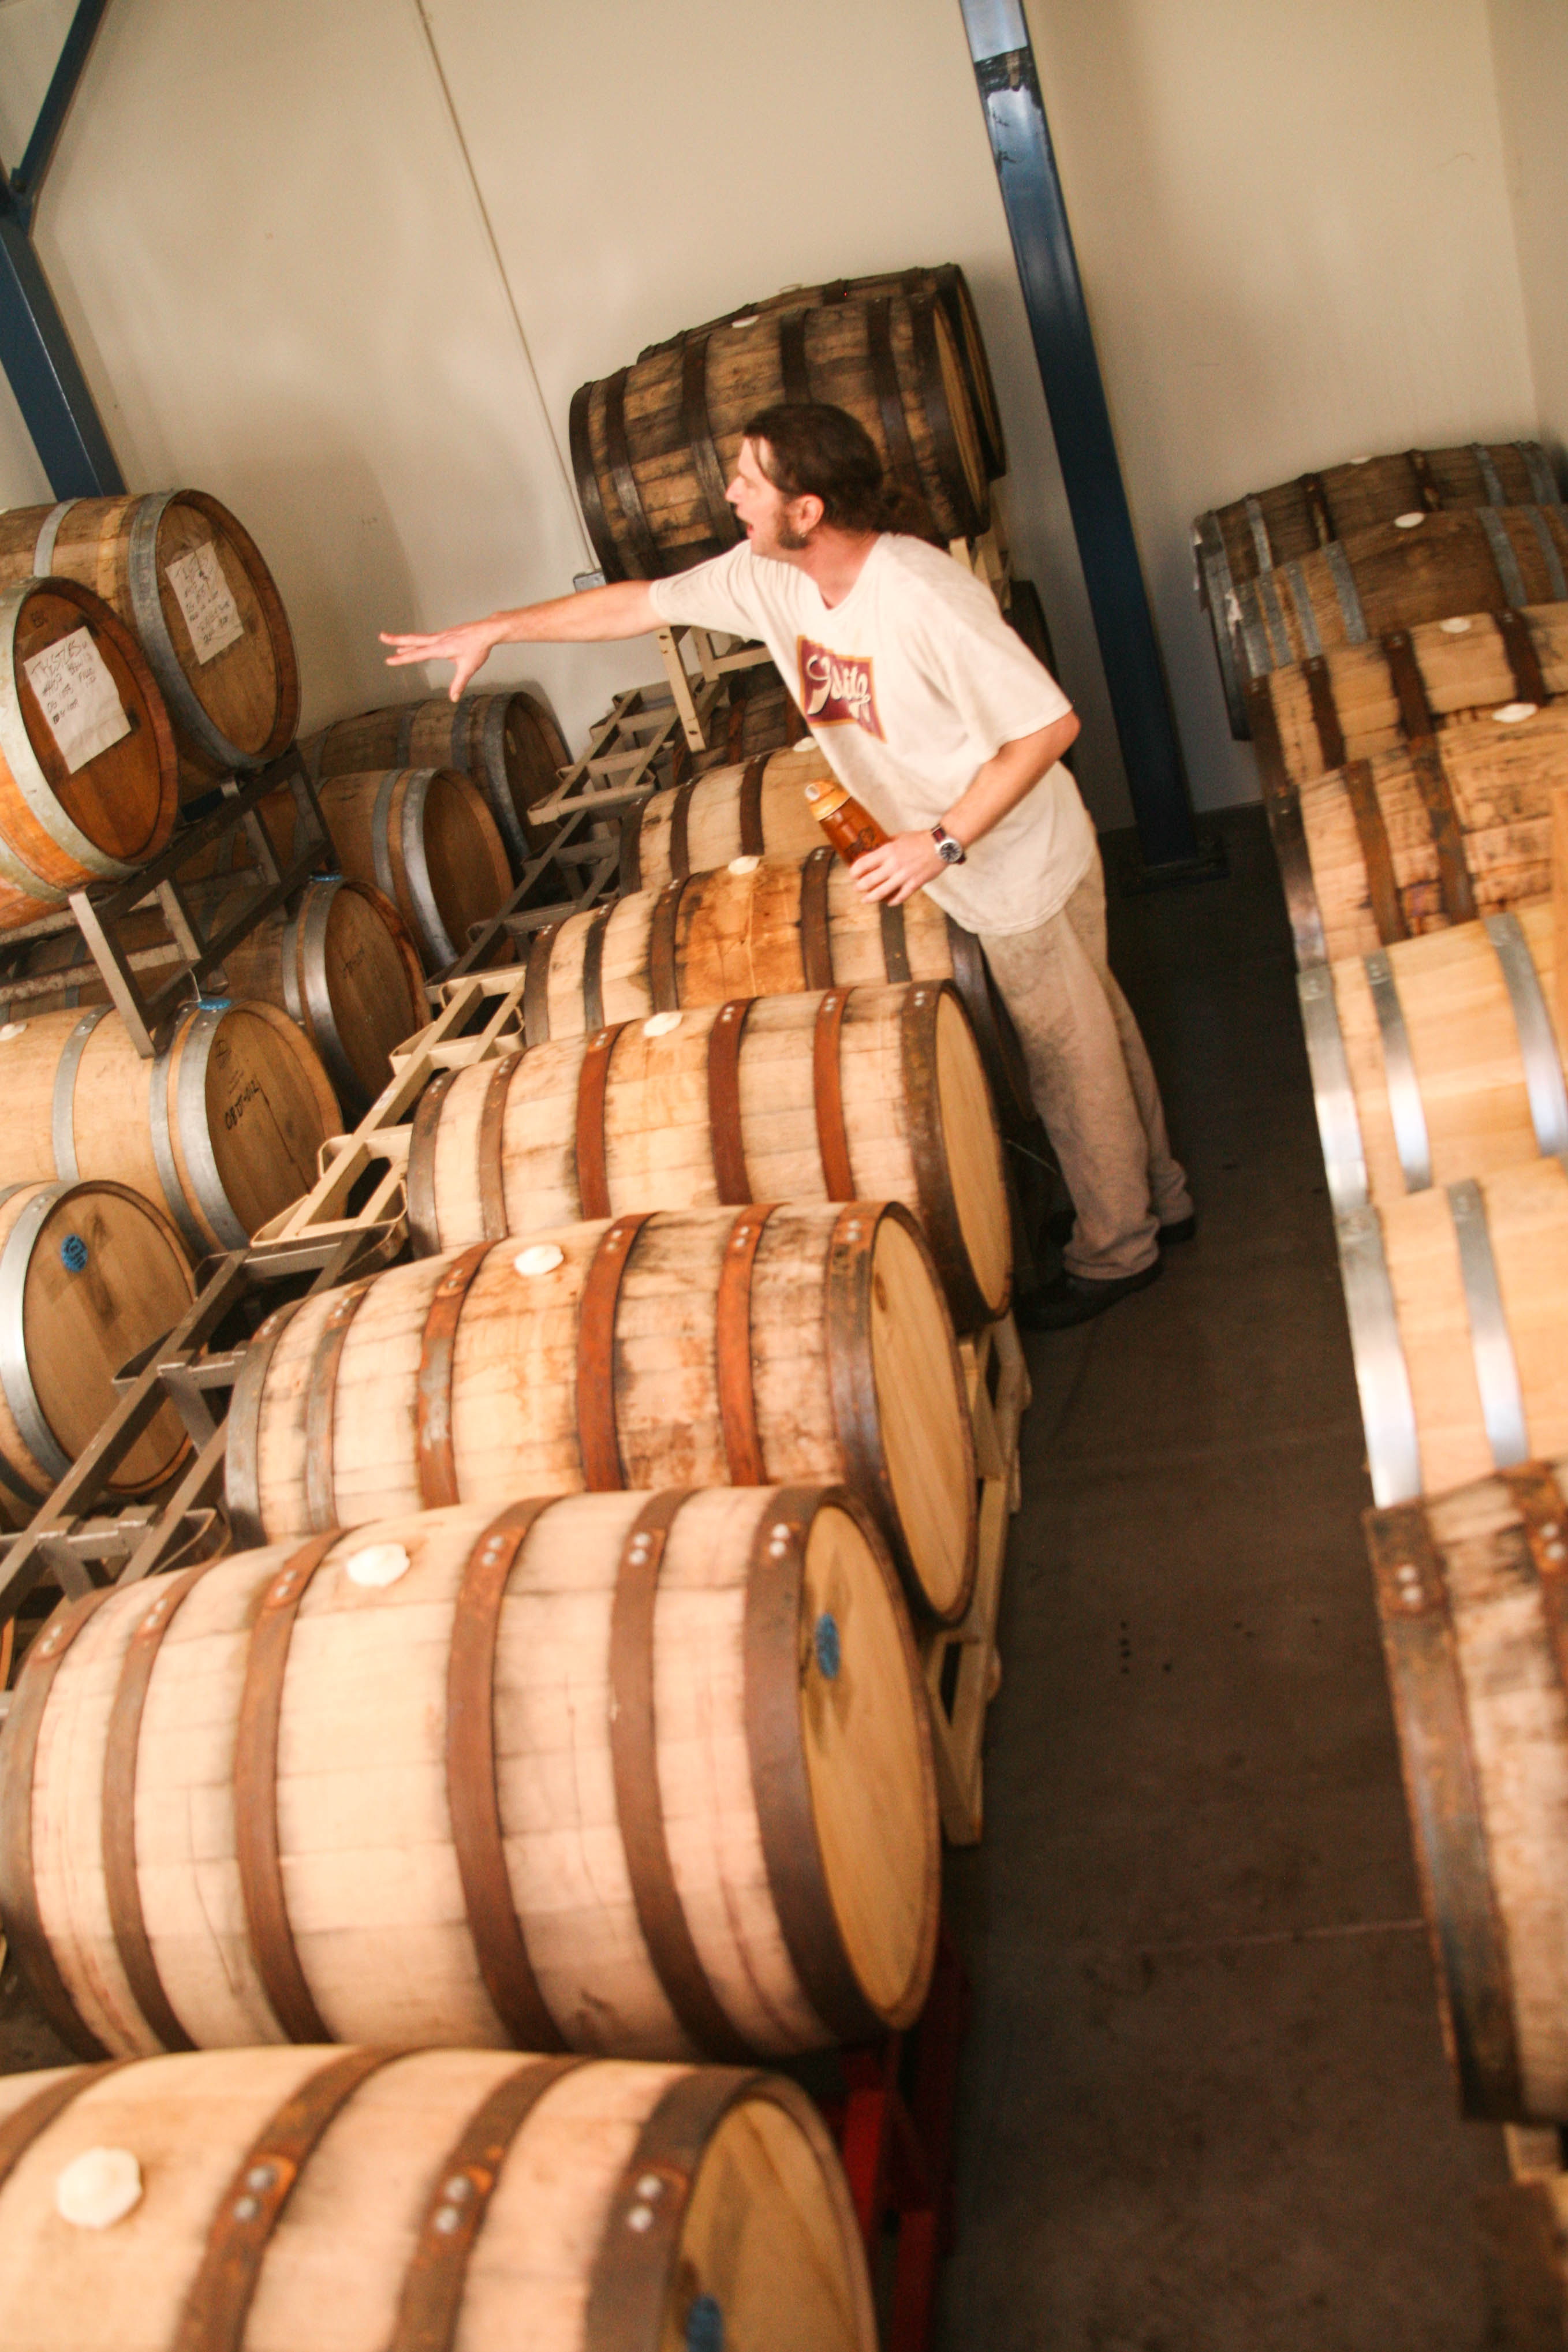 Jim Clarke, head brewer of Left Coast, explains the different beers aging in their barrels.